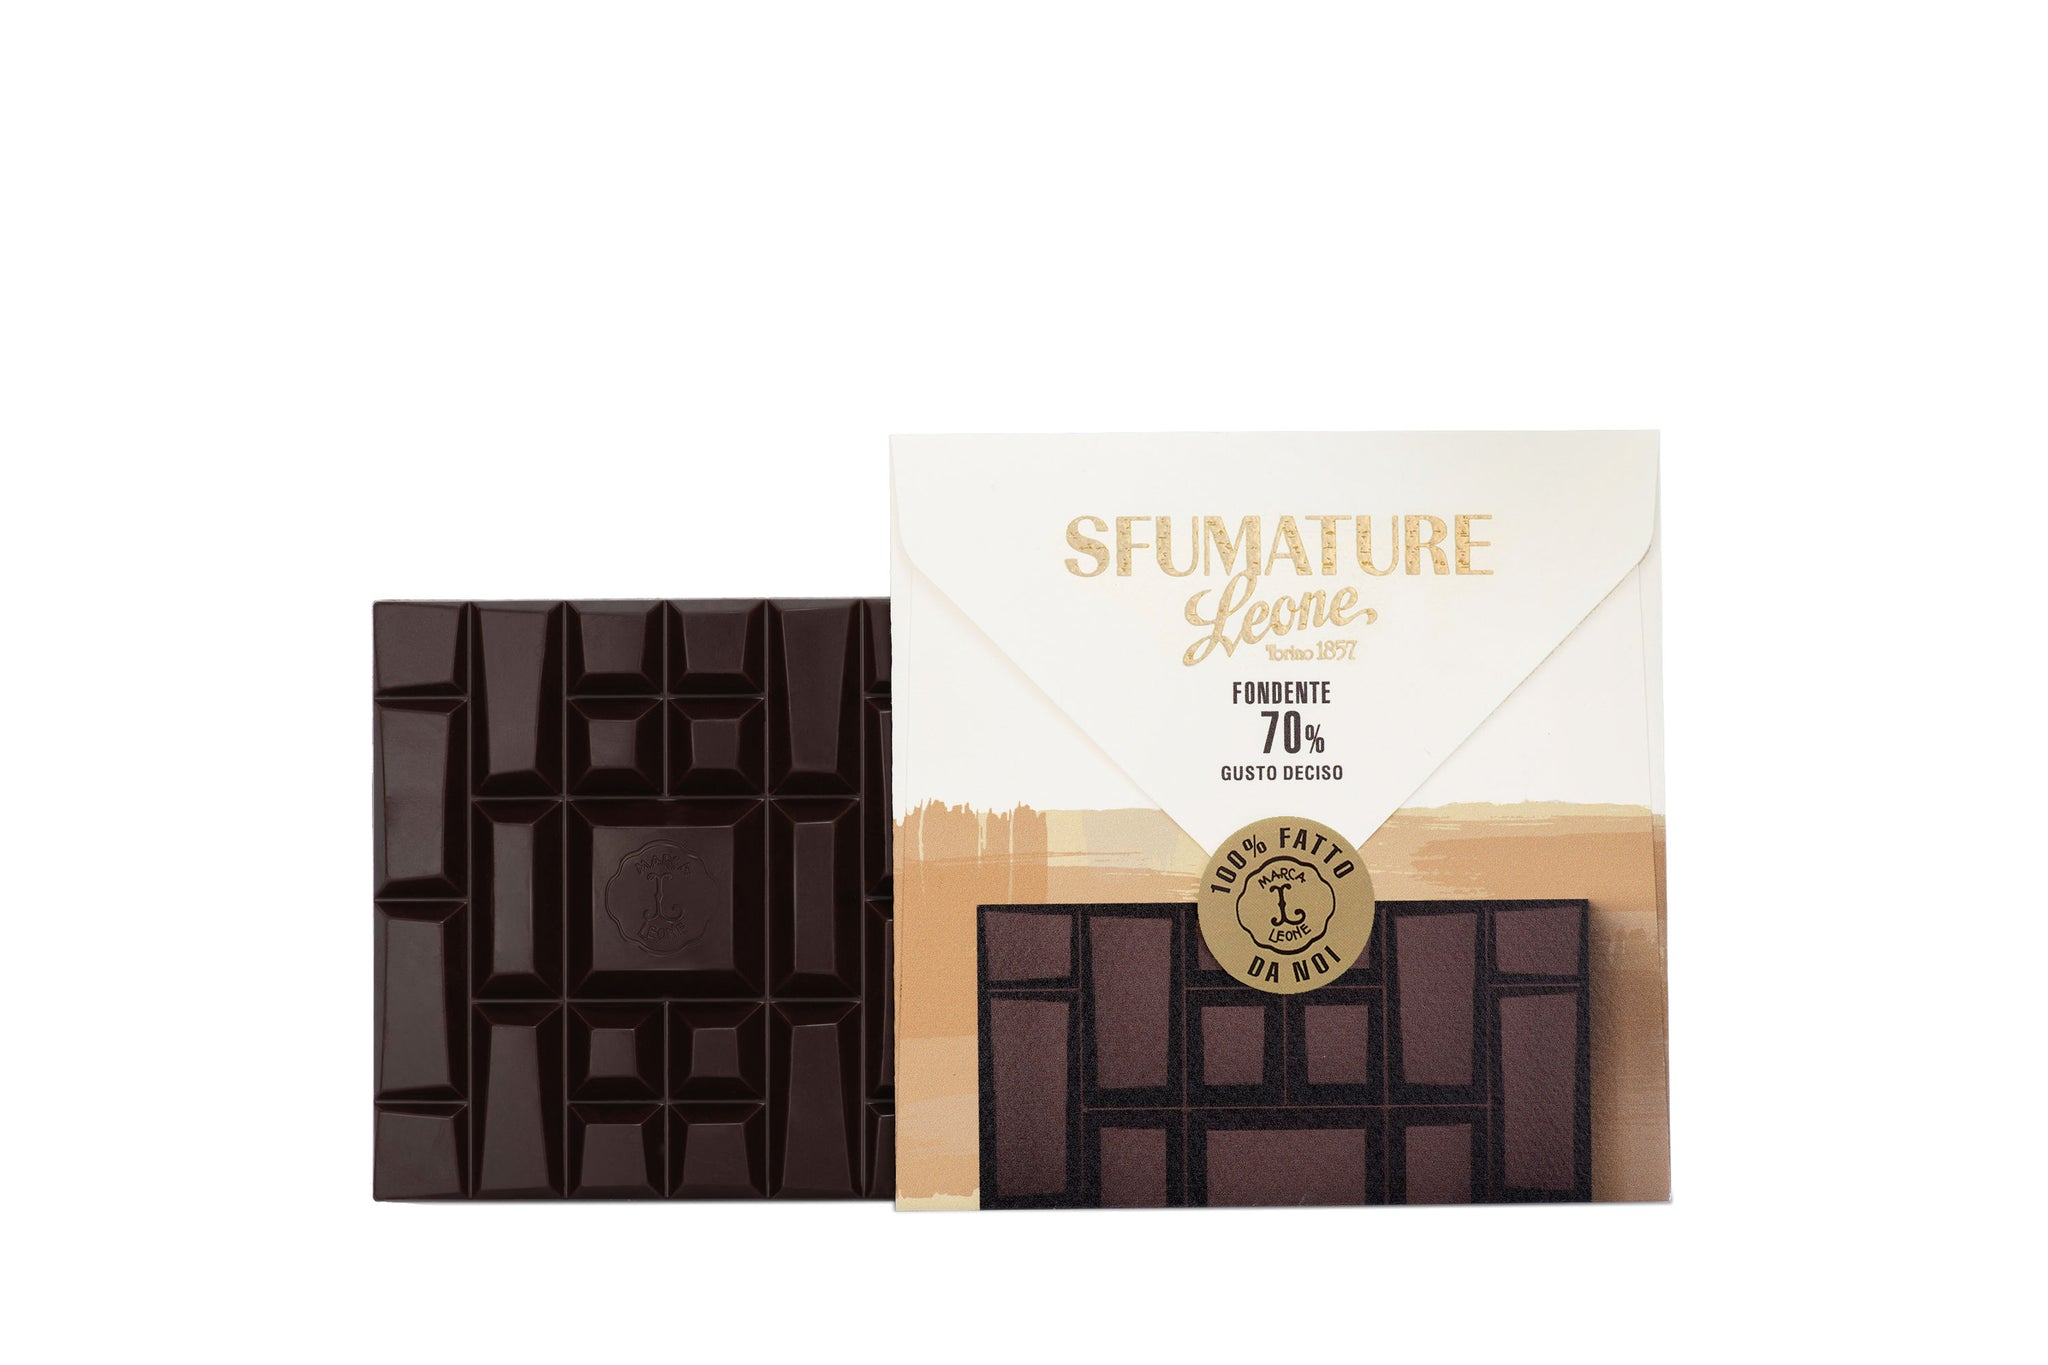 Pastiglie Leone Sfumature 70% Bean to Bar Dark Chocolate Intense 75g